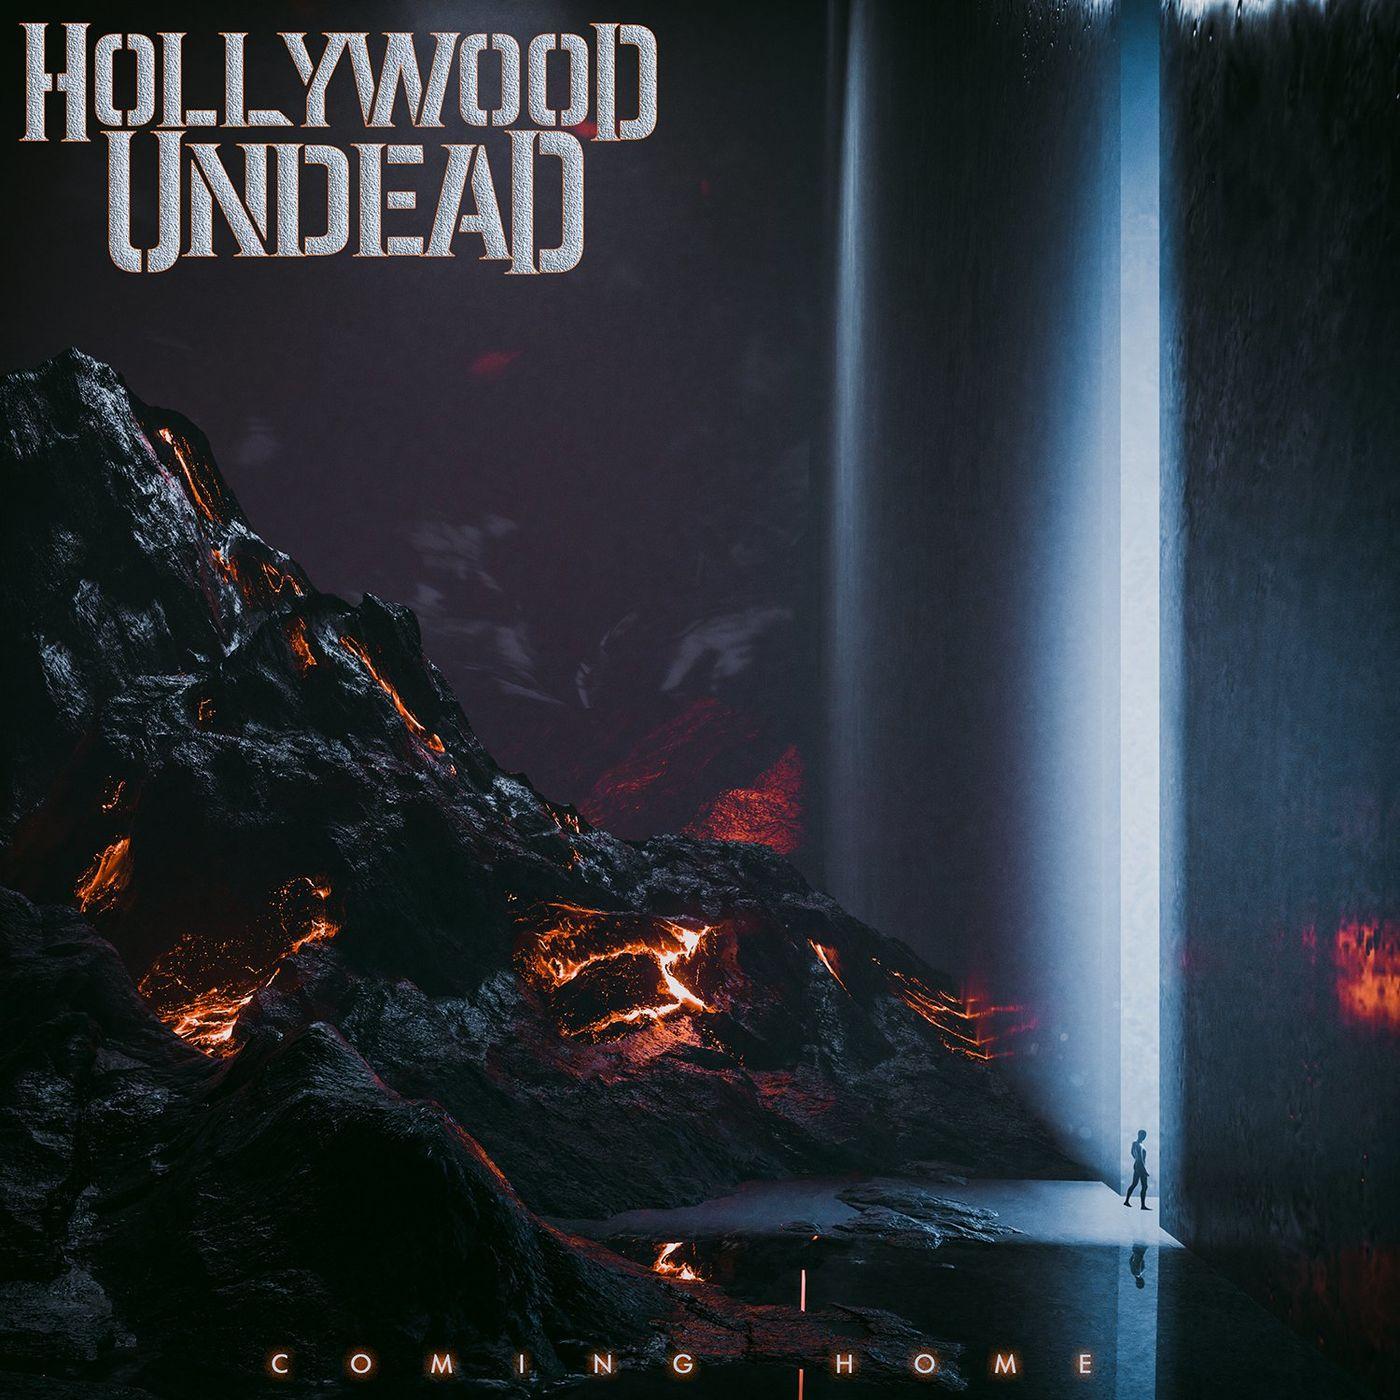 Hollywood Undead - Coming Home [single] (2020)